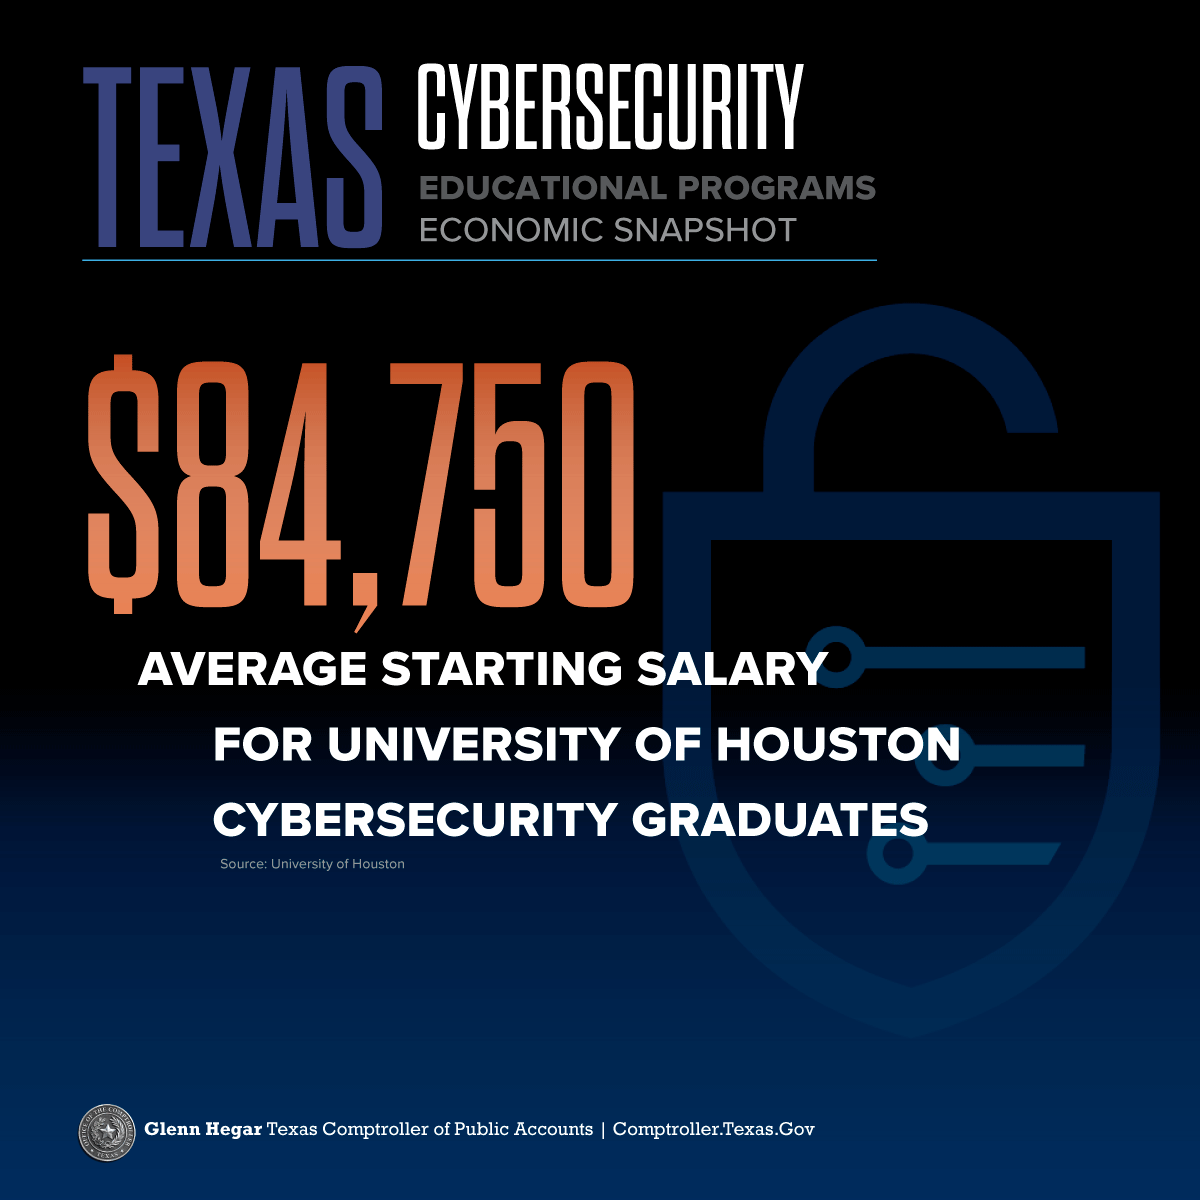 Texas Cybersecurity Educational Programs Economic Snapshot 98% of UTSA cybersecurity graduates have jobs upon graduation. Source: The University of Texas at San Antonio